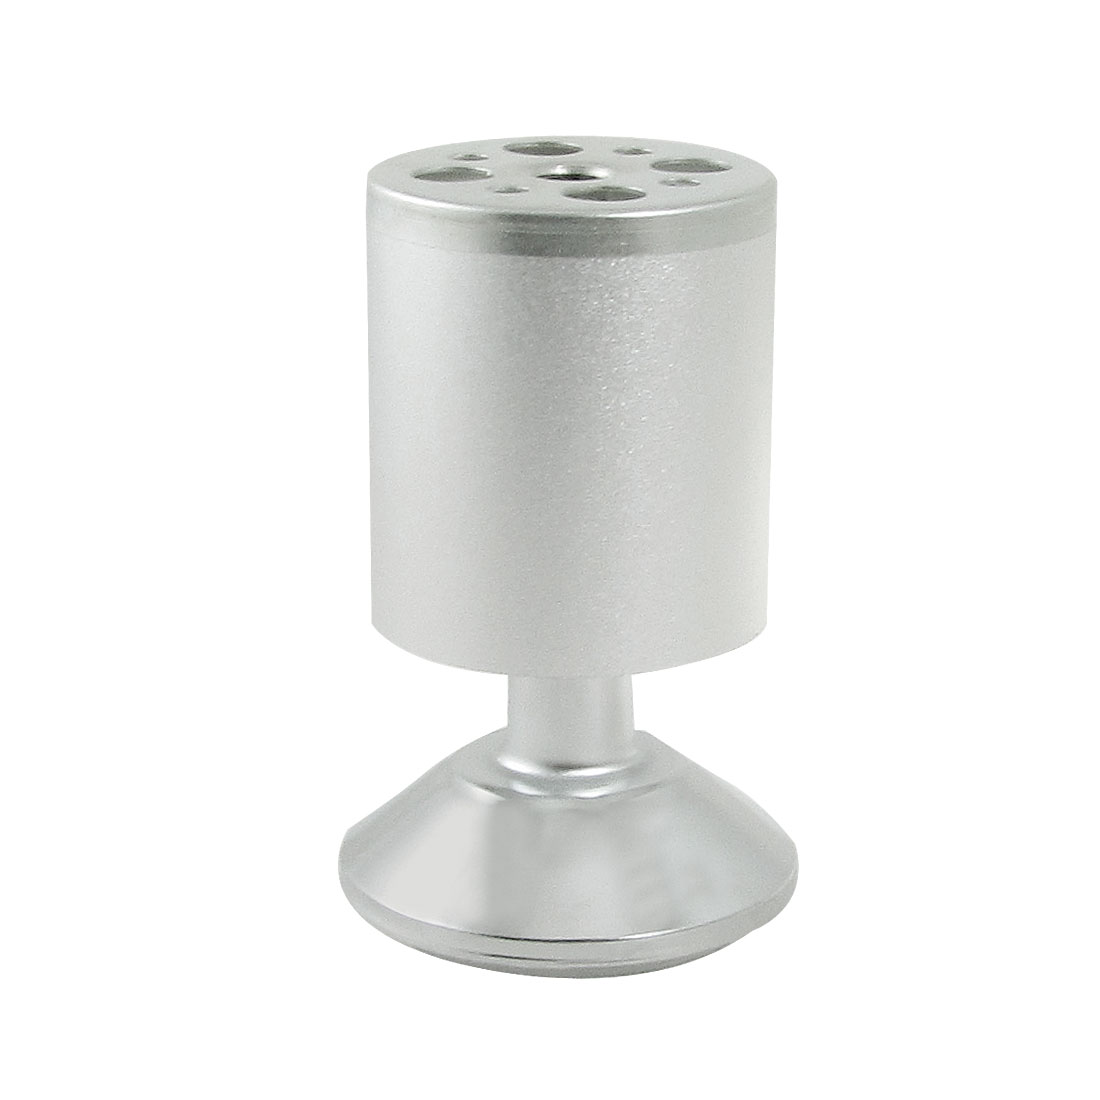 Sliver Tone Furniture Plastic Base 6cm x 9.5cm Feet Table Leg